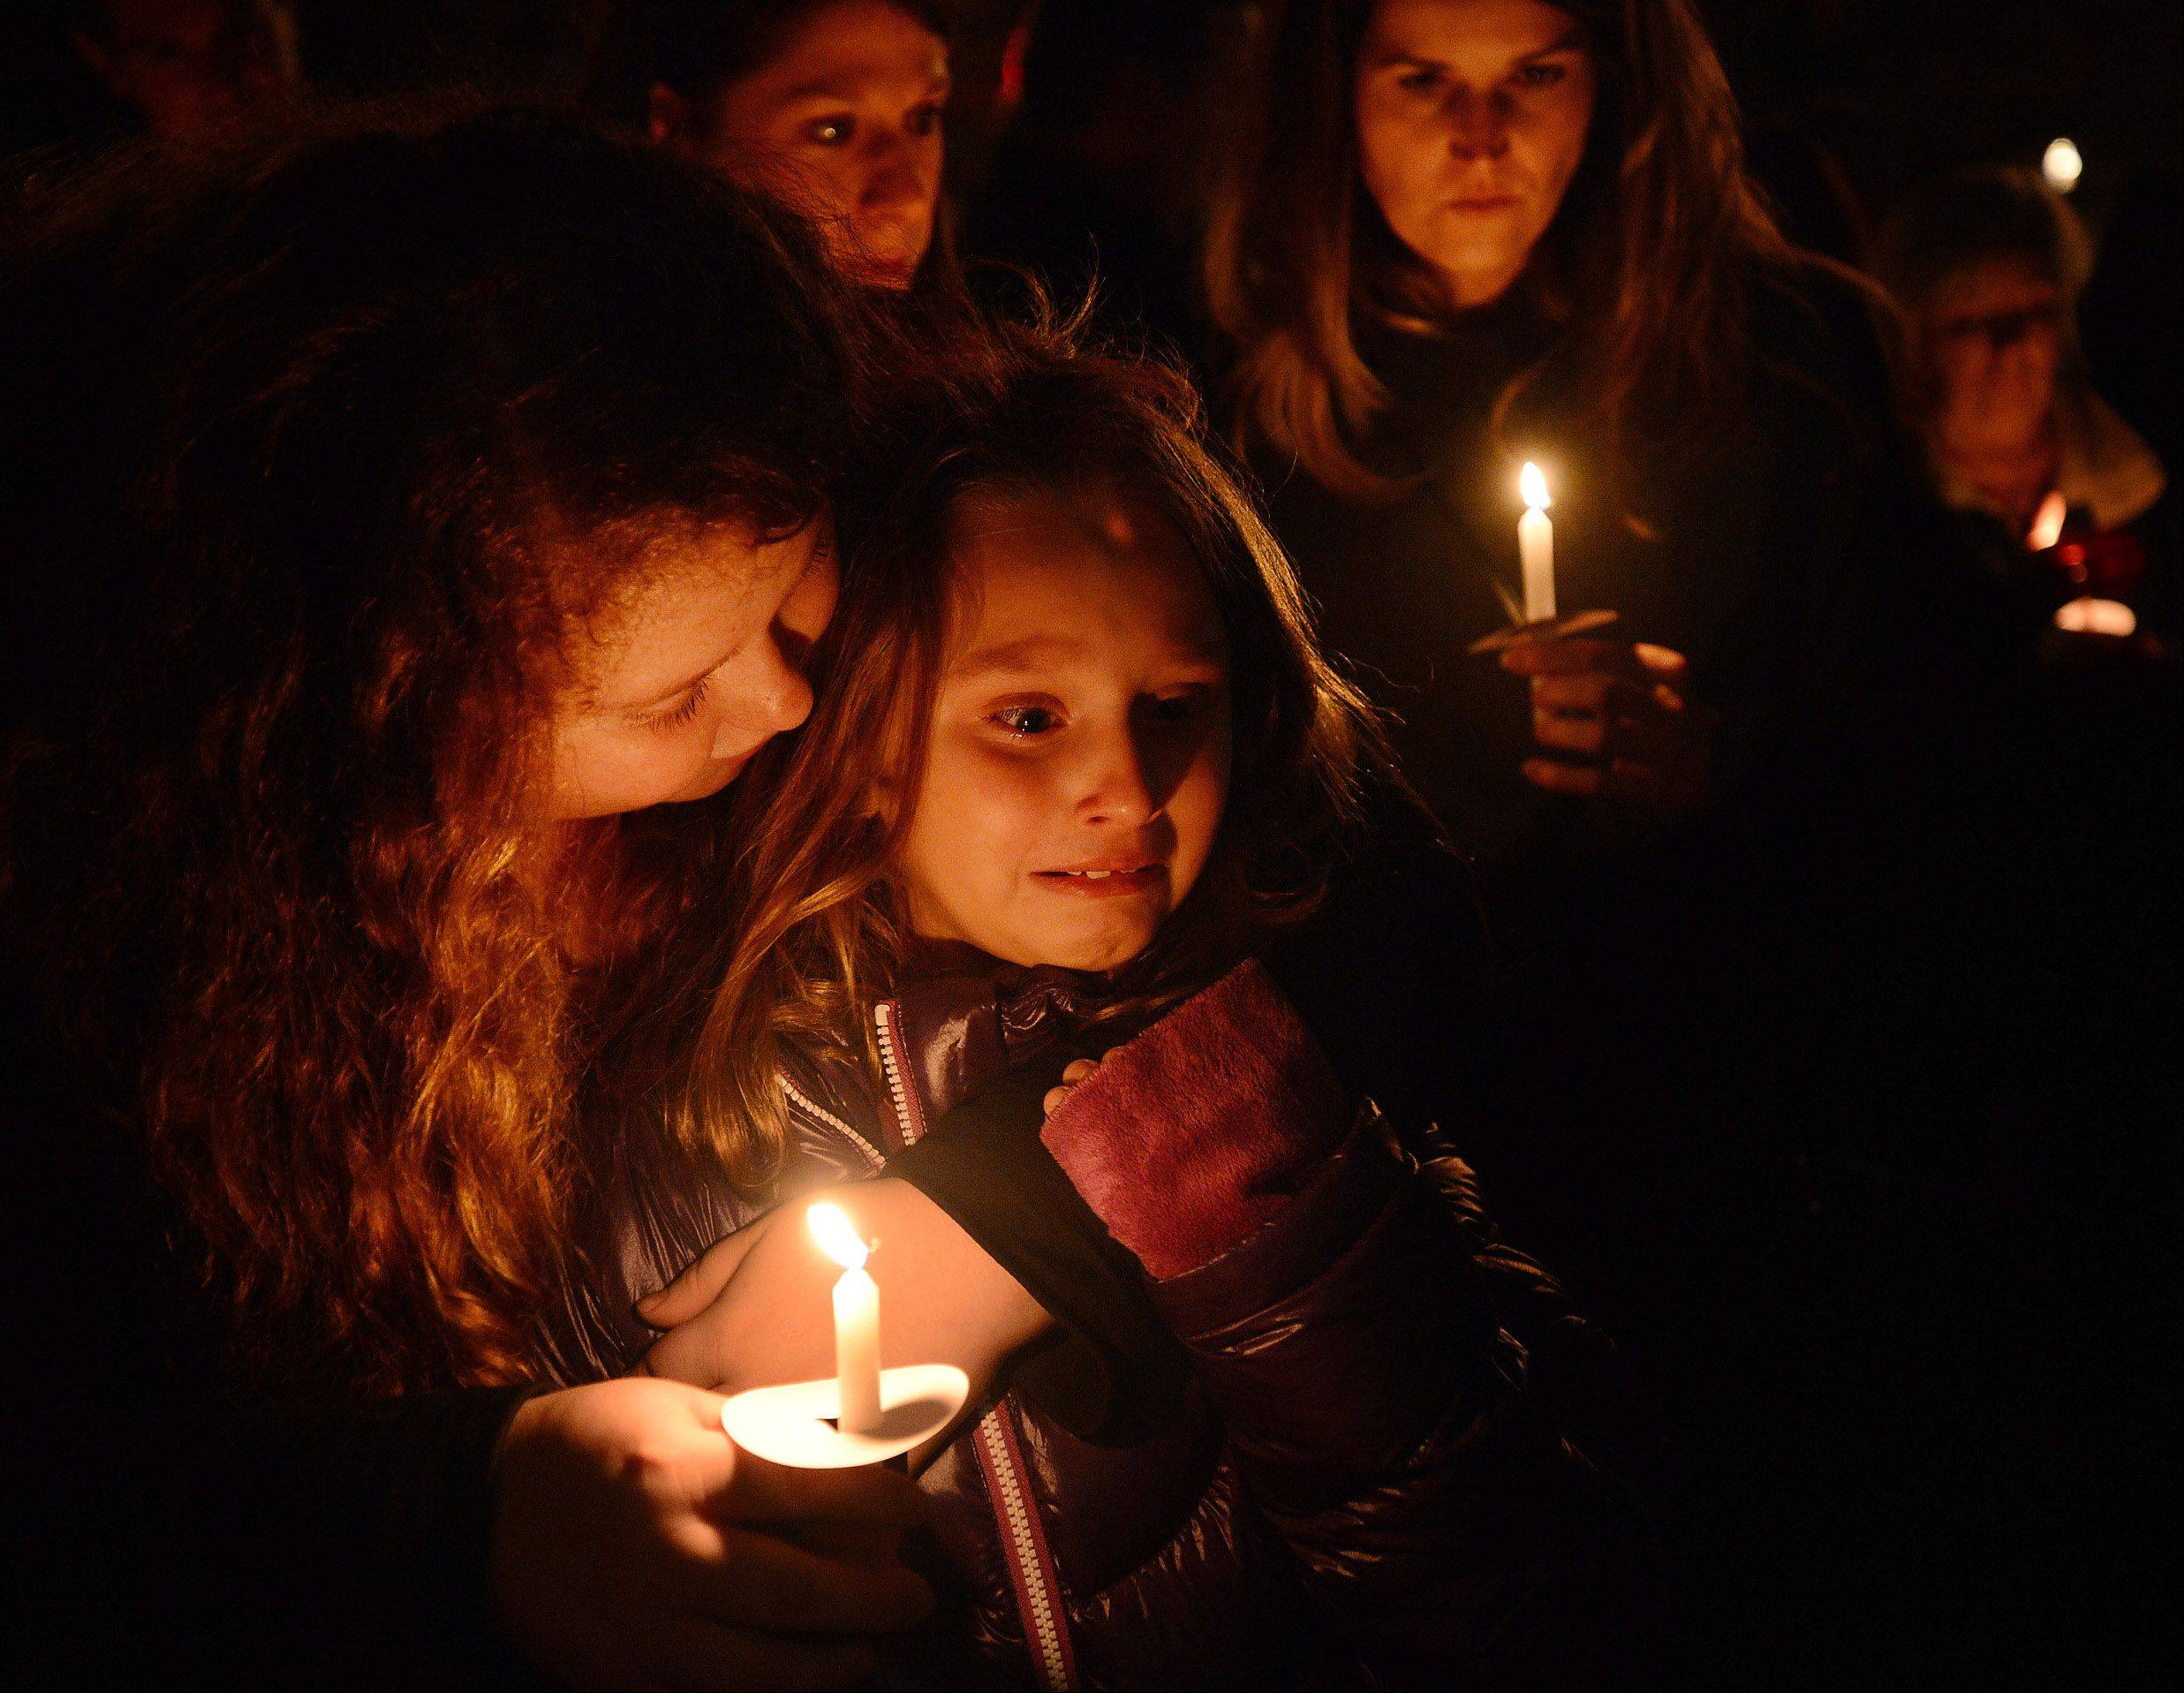 Teresa Russo, left, the daughter of Frank Russo, consoles Kaylee Roden, his grandniece, during Friday's candlelight vigil.